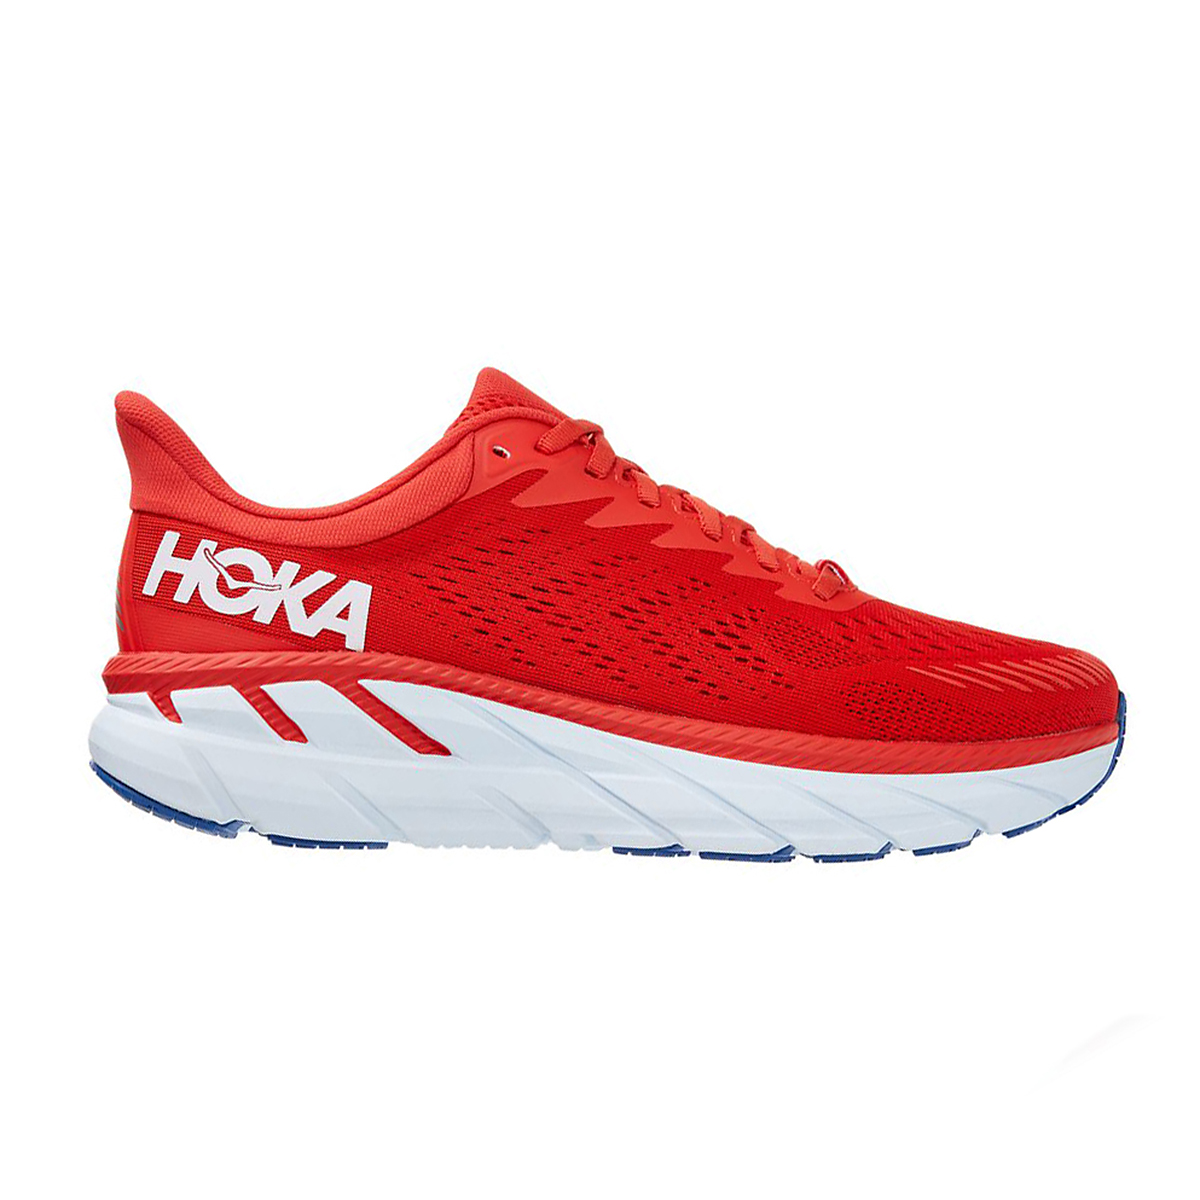 Men's Hoka One One Clifton 7 Running Shoe - Color: Fiesta/White - Size: 7 - Width: Regular, Fiesta/White, large, image 1